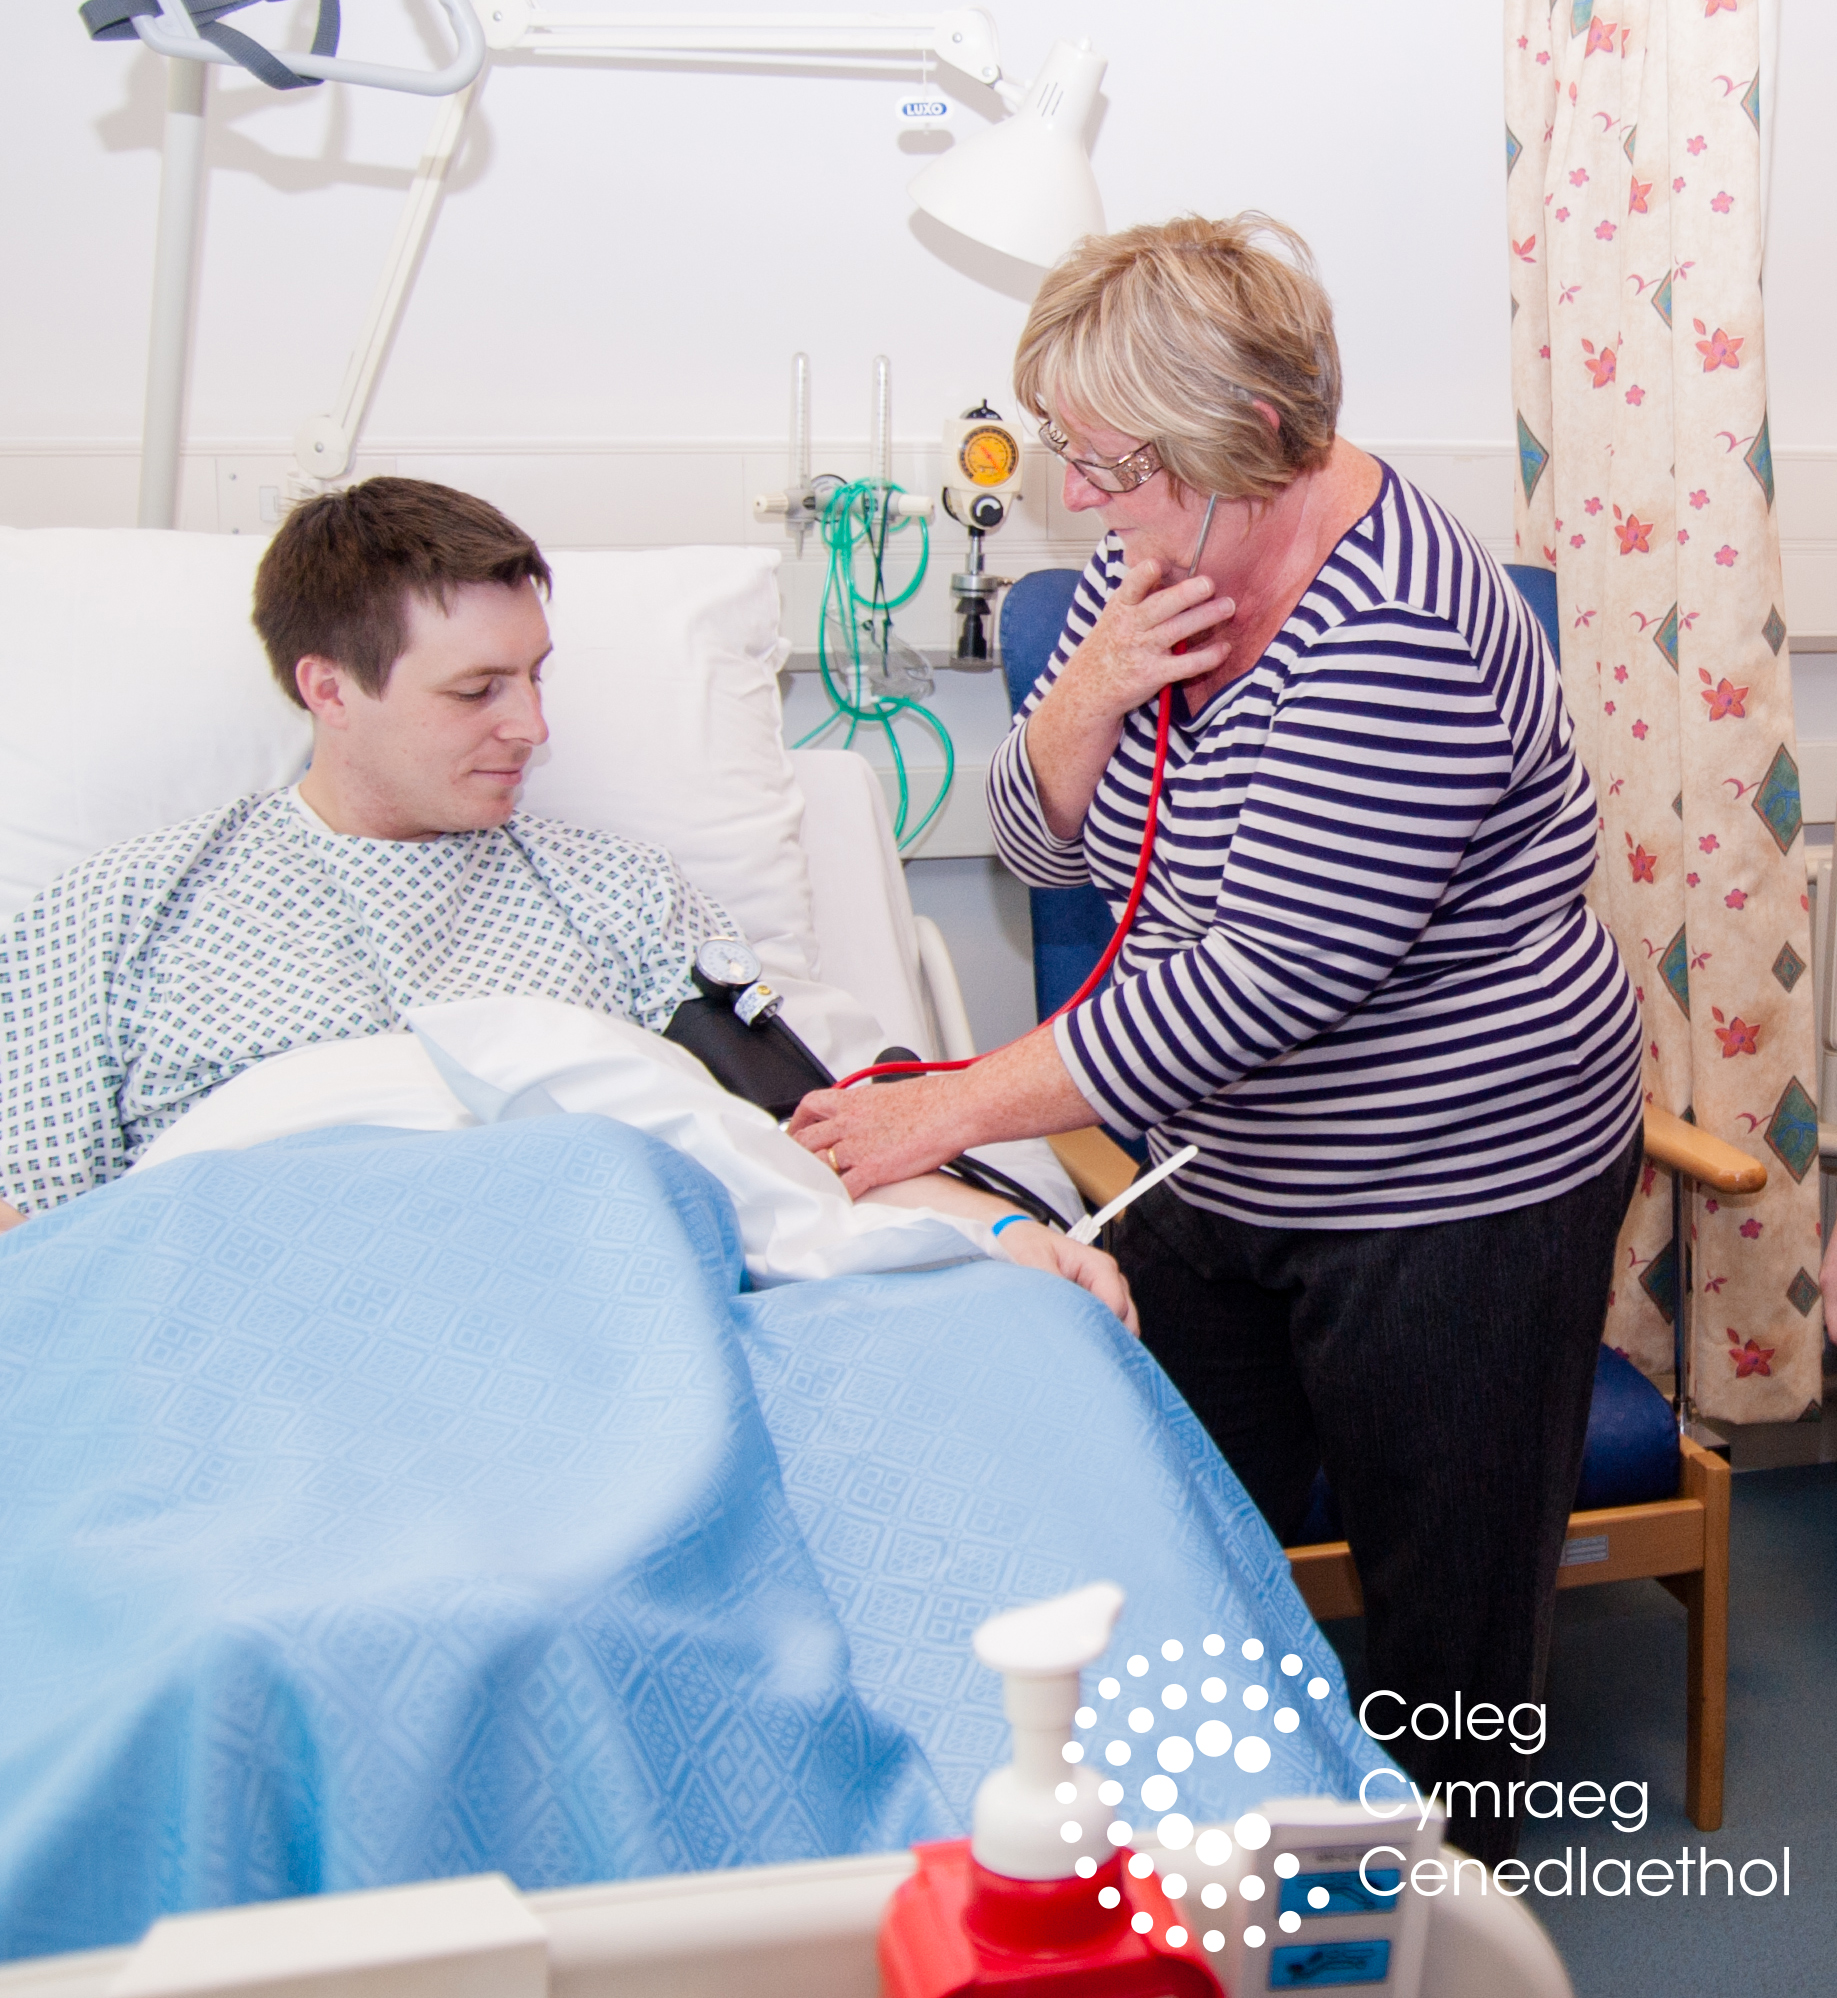 Doctor taking blood pressure of patient in bed